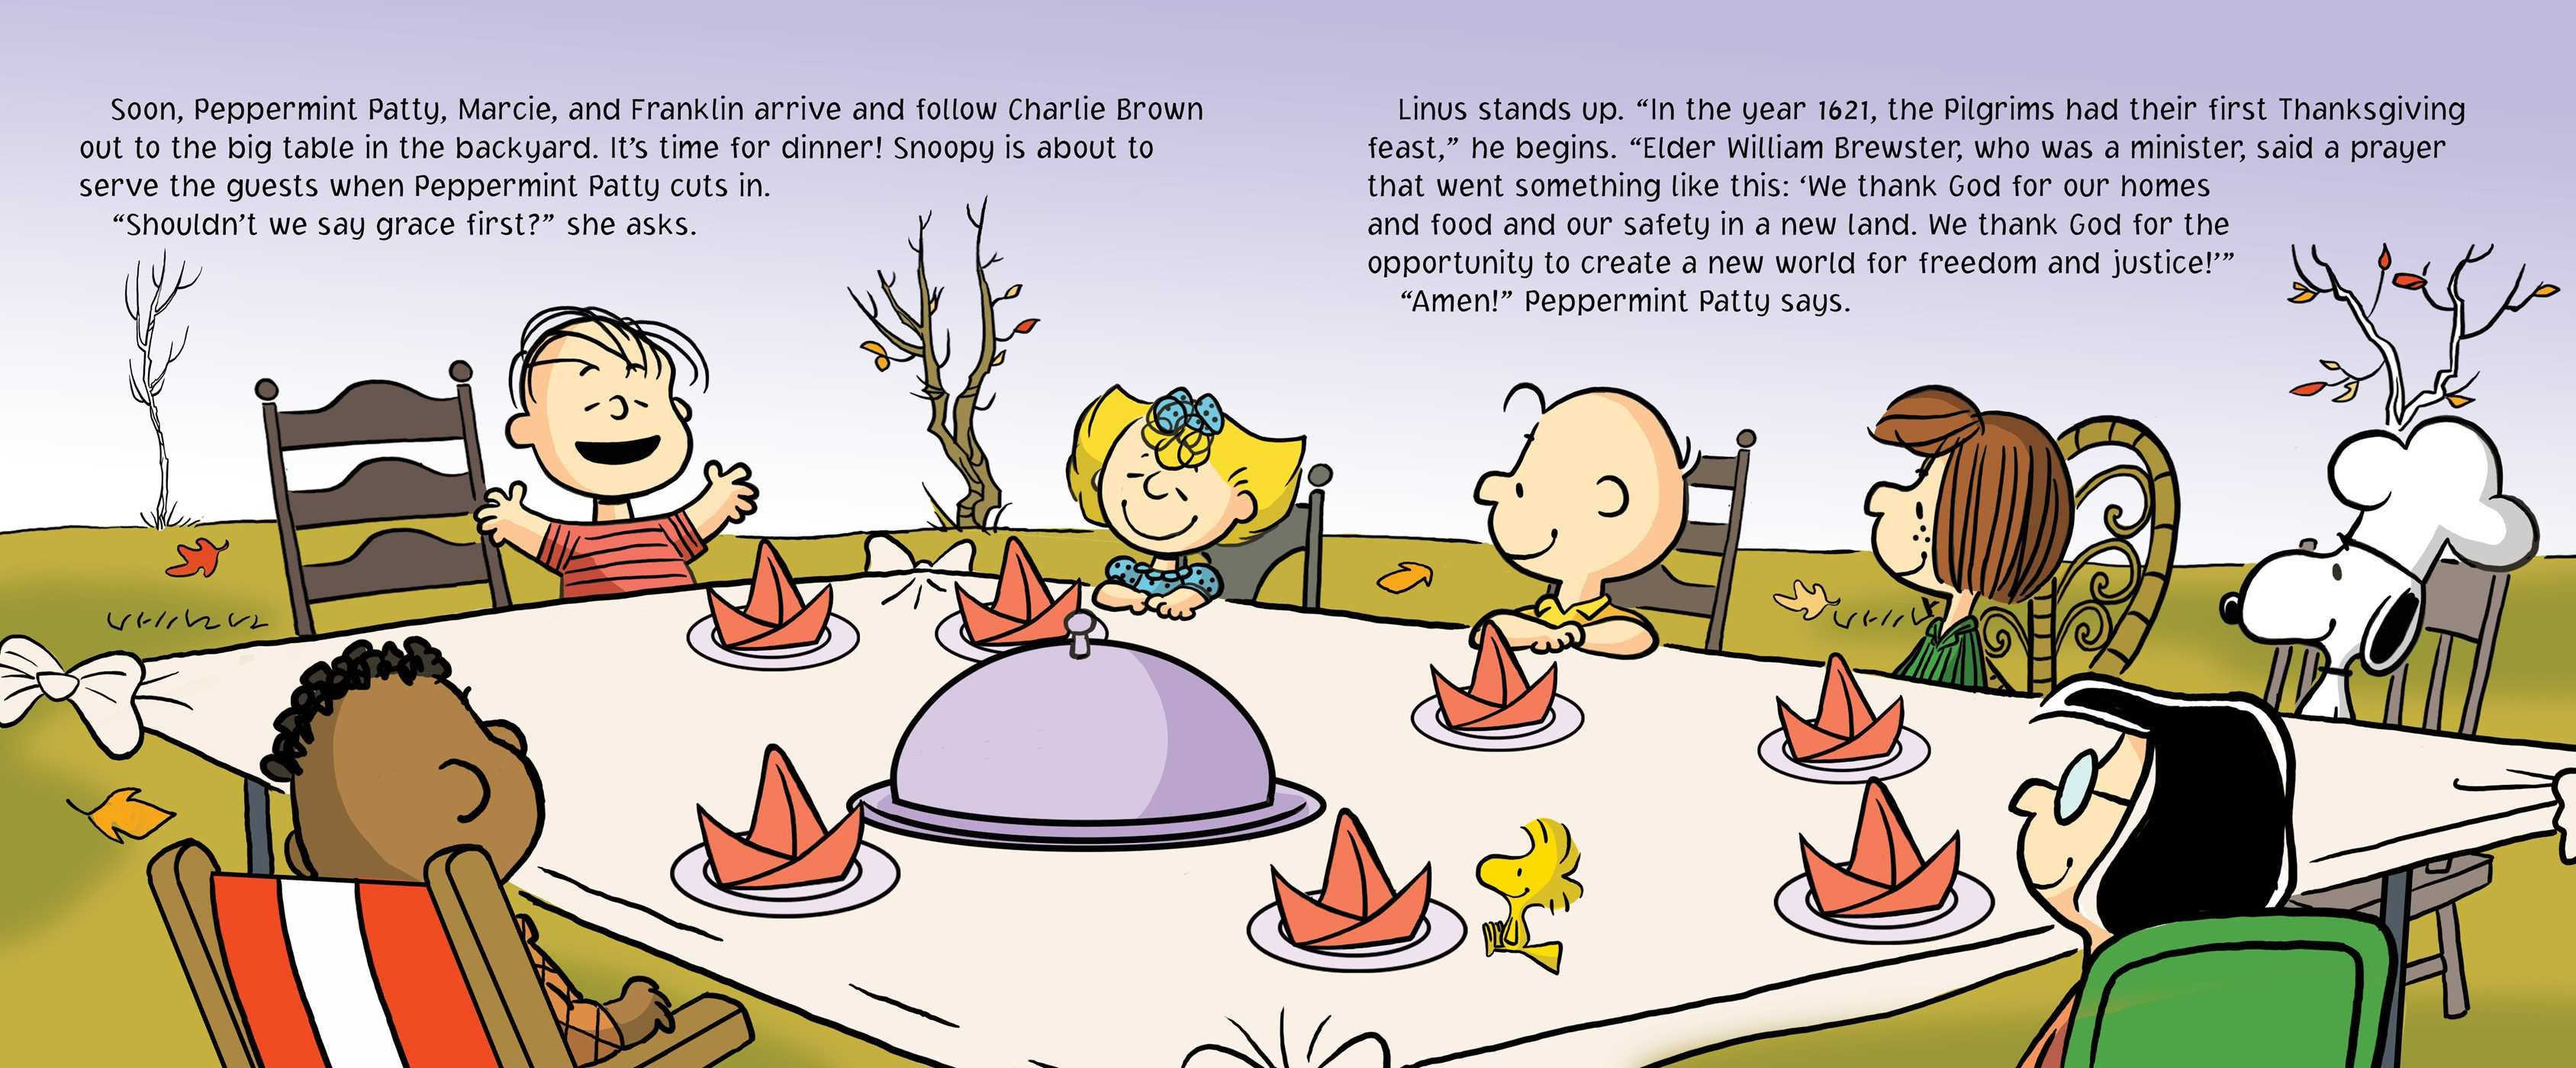 Charlie Brown Thanksgiving Dinner  A Charlie Brown Thanksgiving